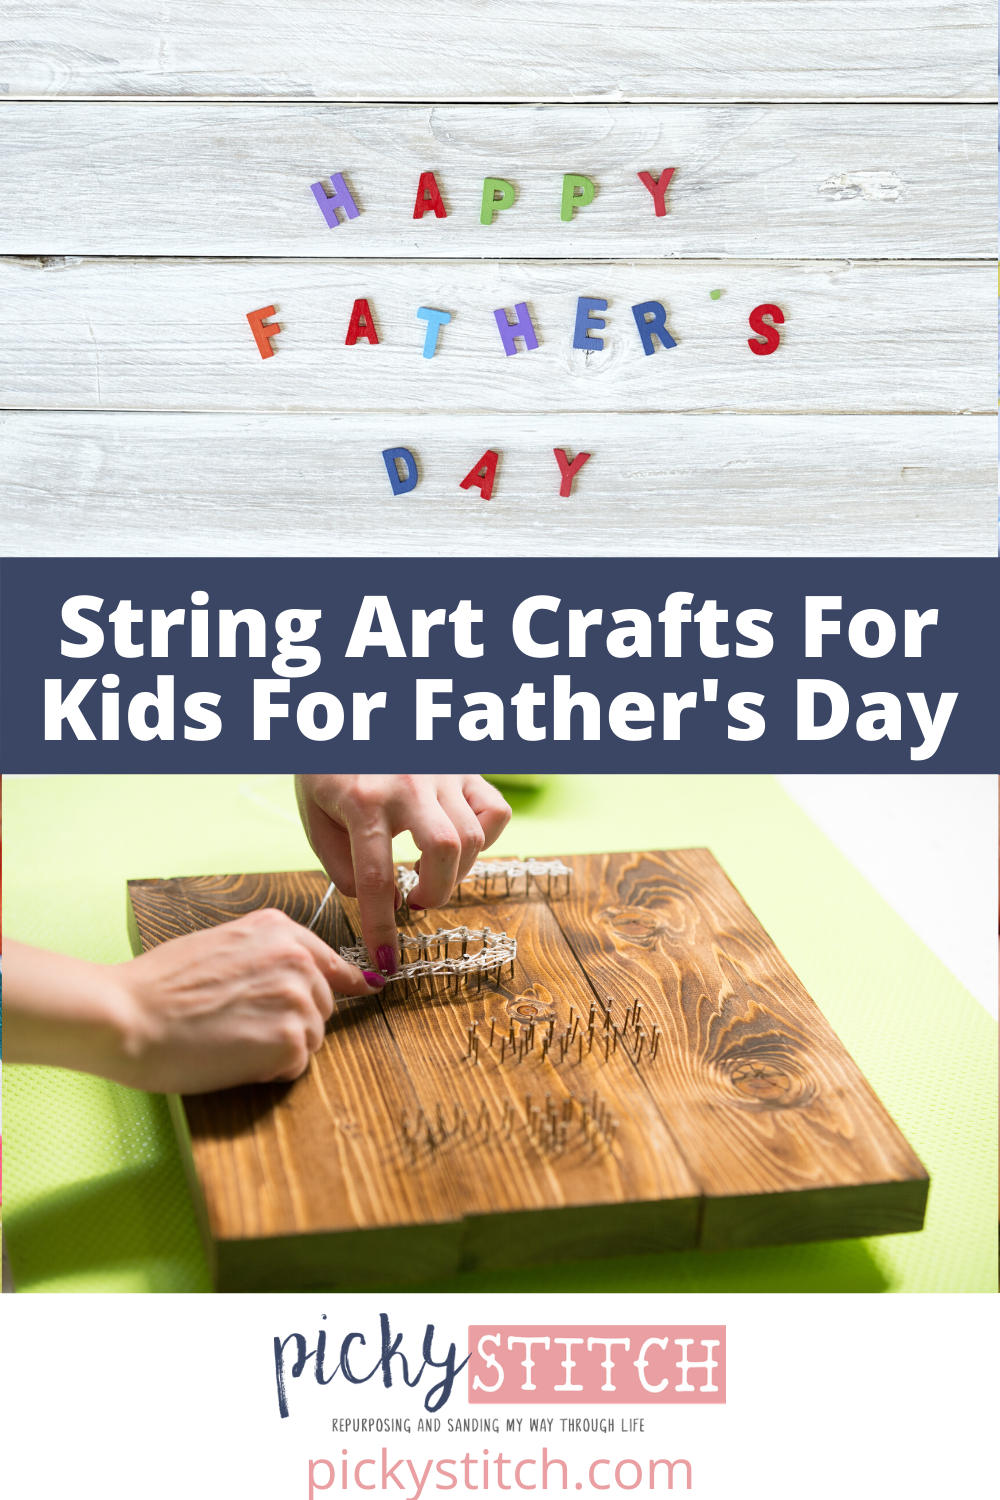 Celebrate Father's Day is style. Let the kids show Dad how much they love him with one of these string art crafts for kids. They are cute and will mean so much to the guy who works so hard to support the family. #kidsgiftsforfathersday #stringartcraftsforkids #fathersday #pickystitchblog